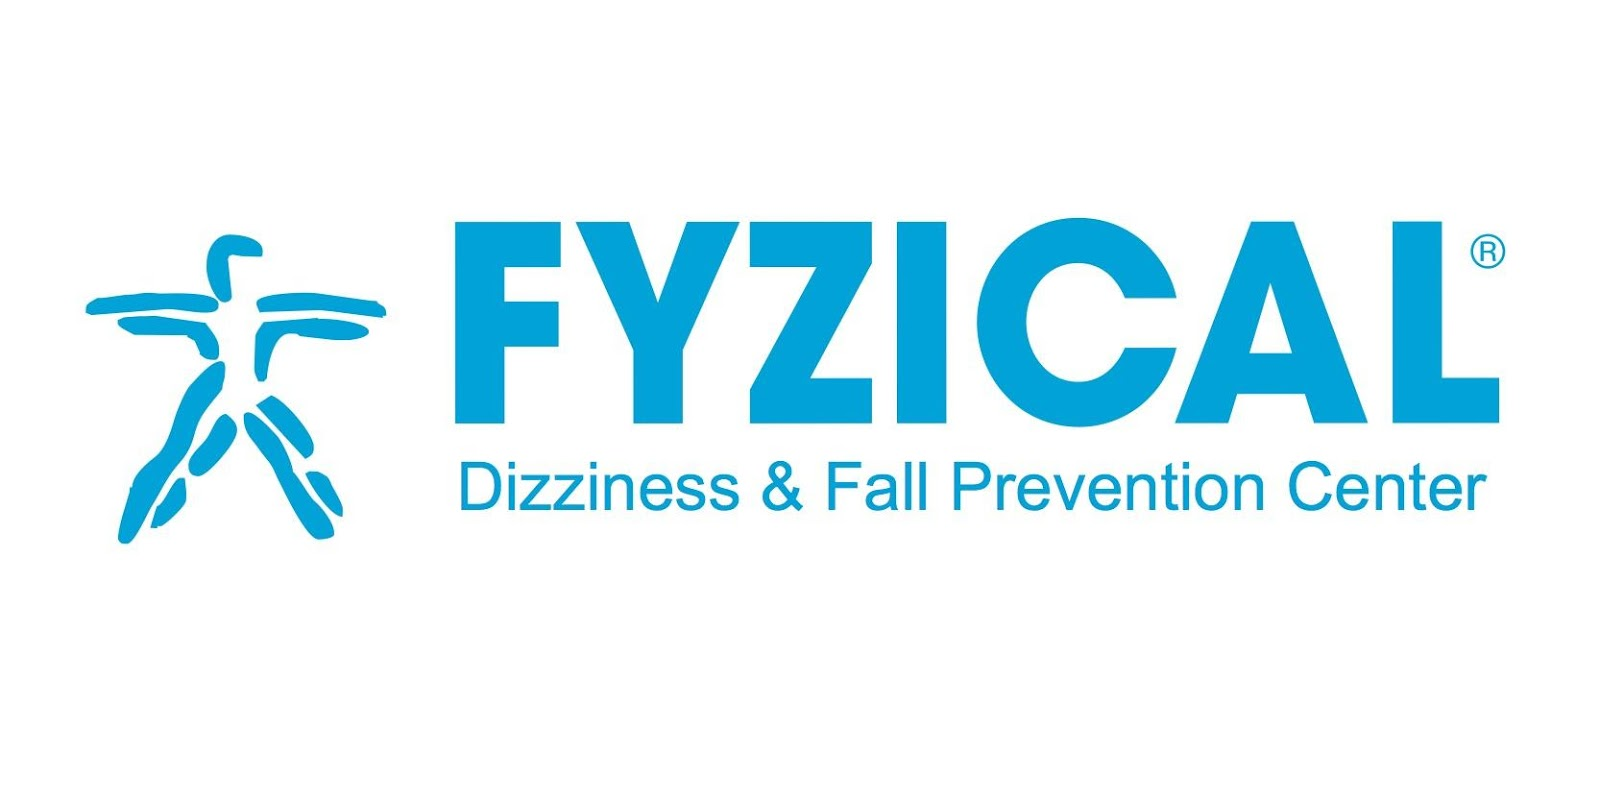 What Specialties Does Fyzical Provide?